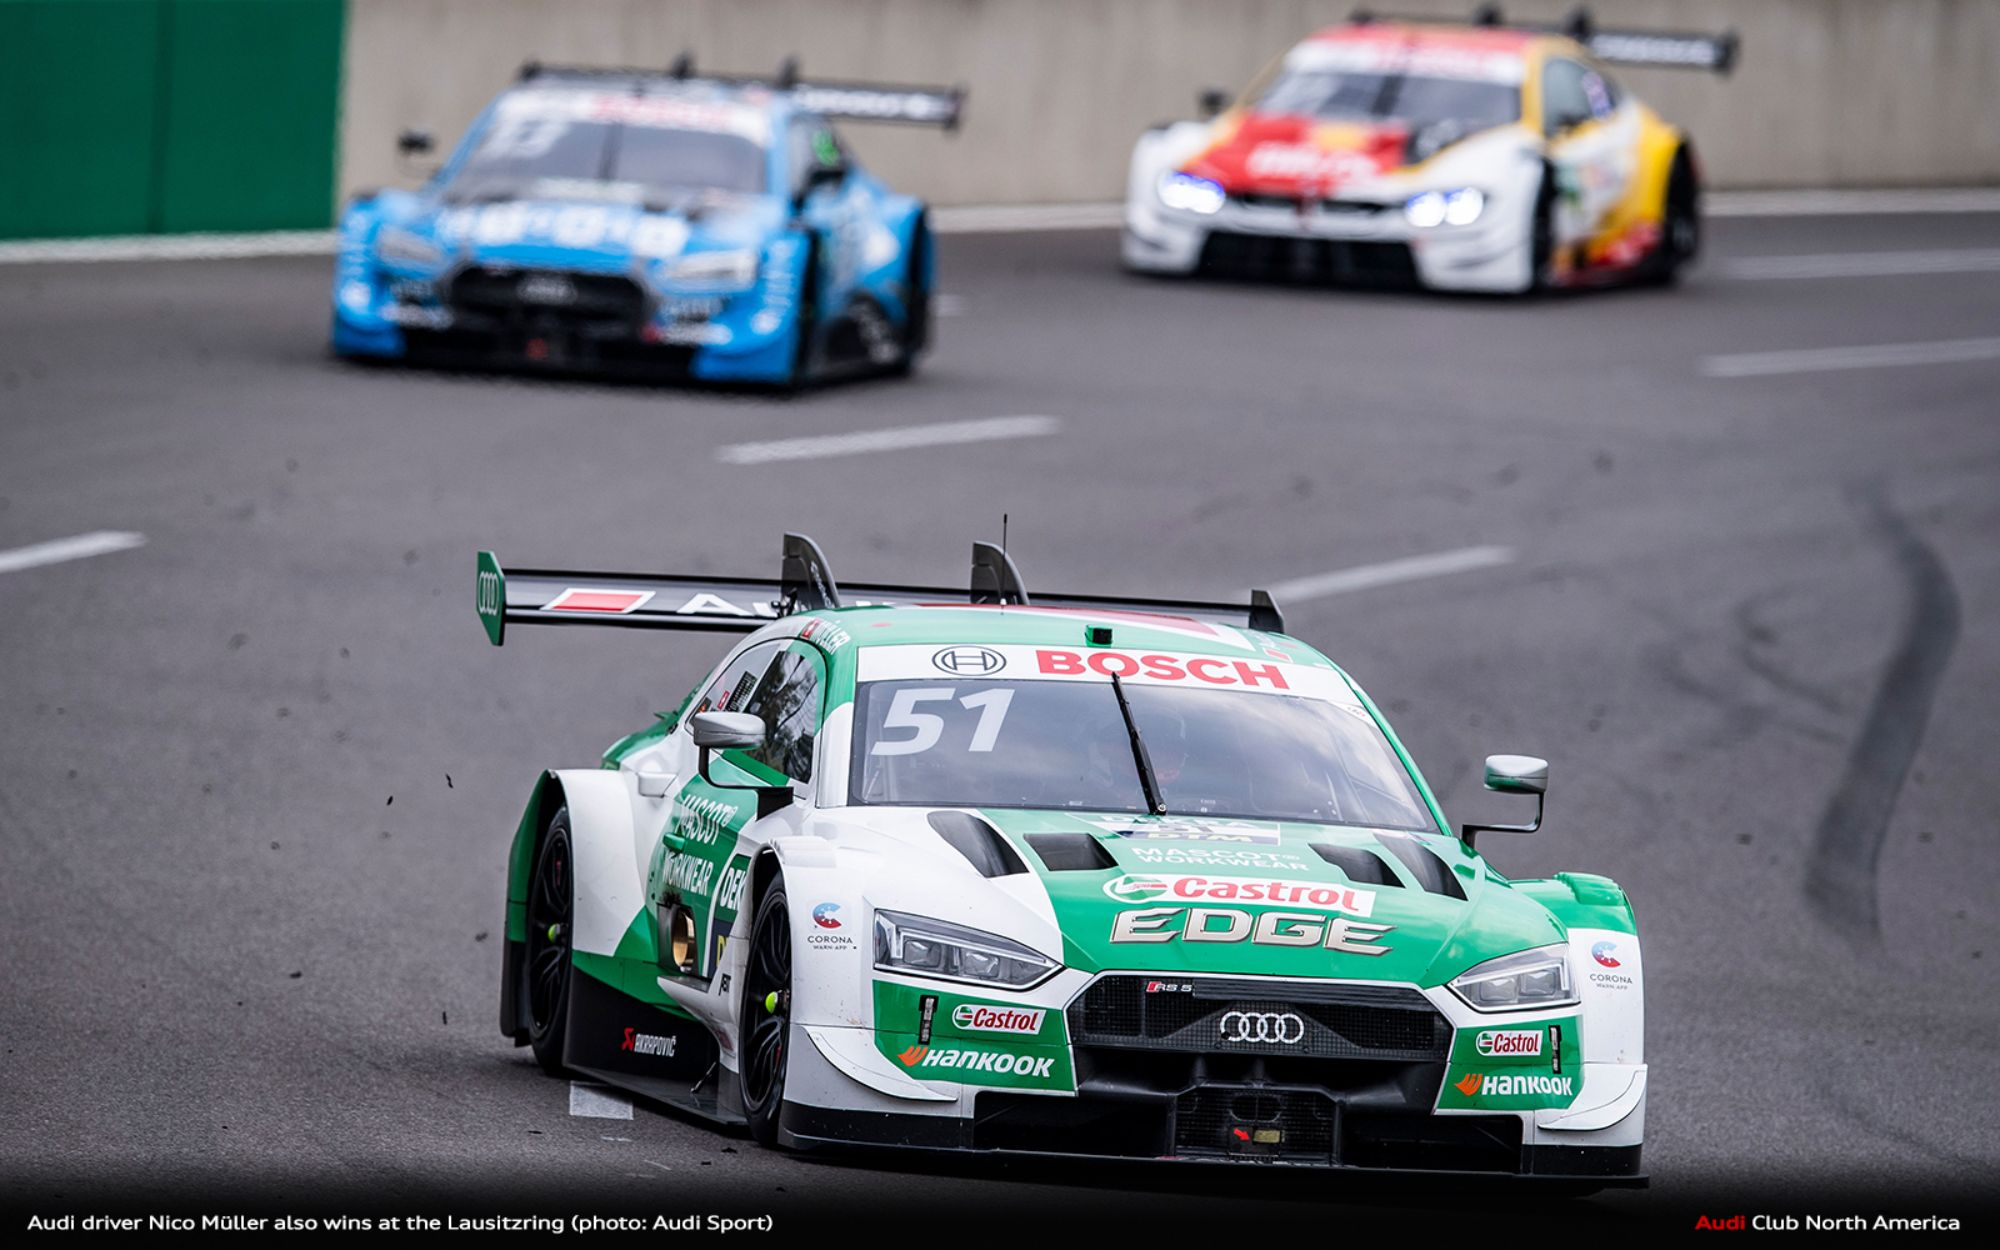 Audi Driver Nico Müller Also Wins at the Lausitzring